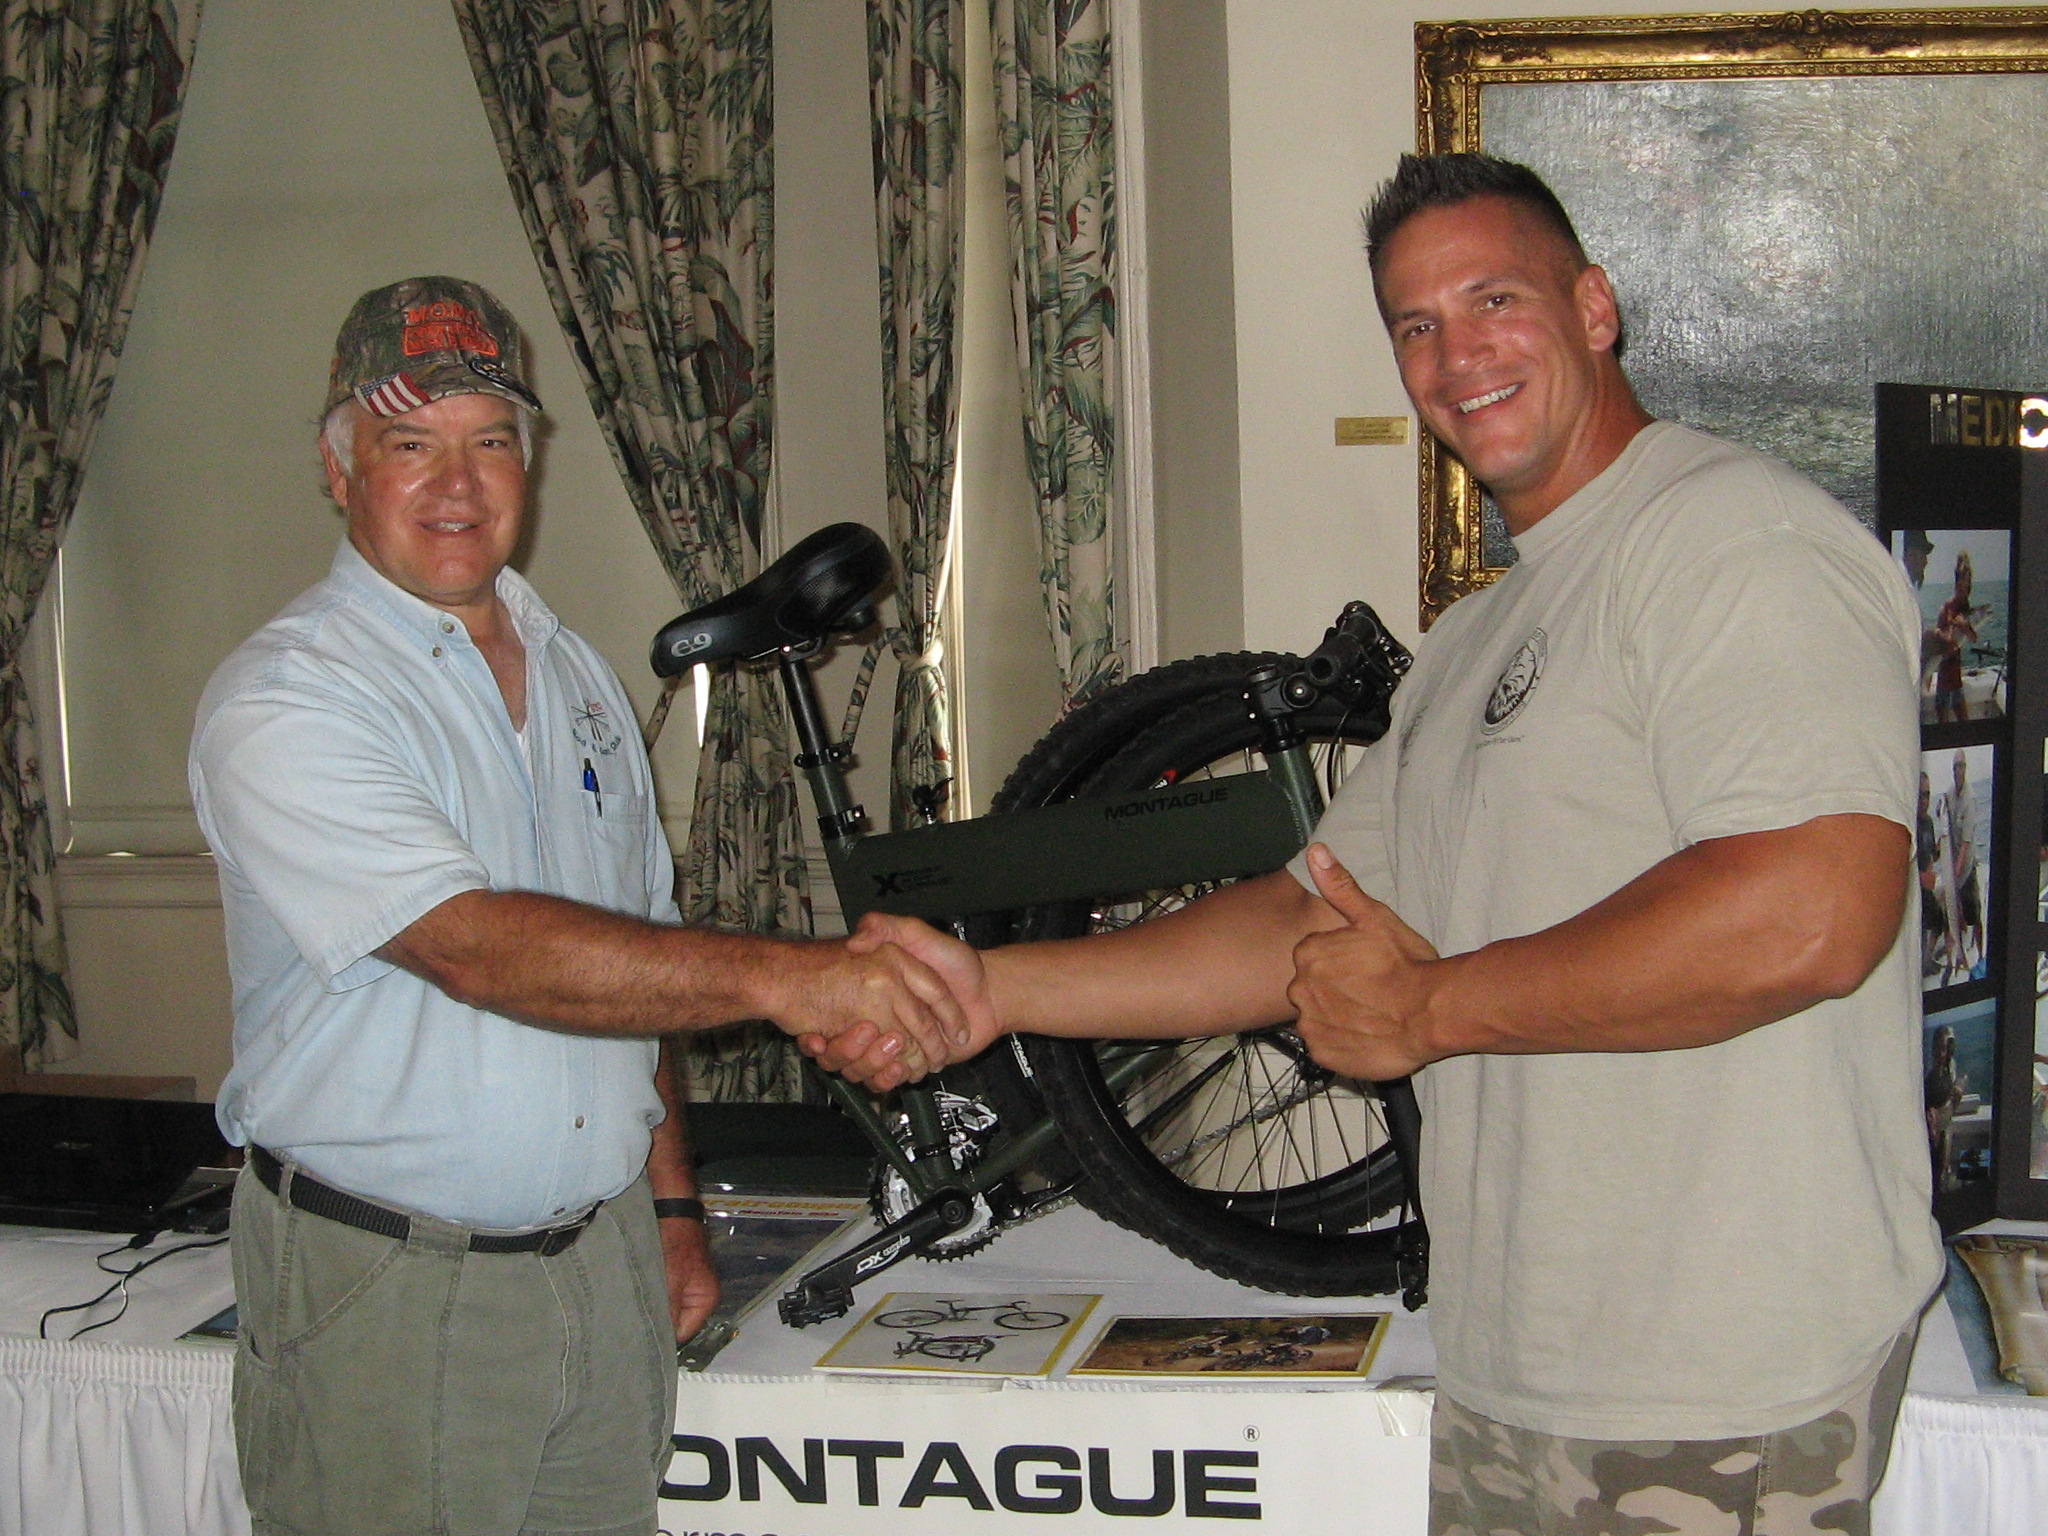 Montague folding bike for the operation injured soldiers